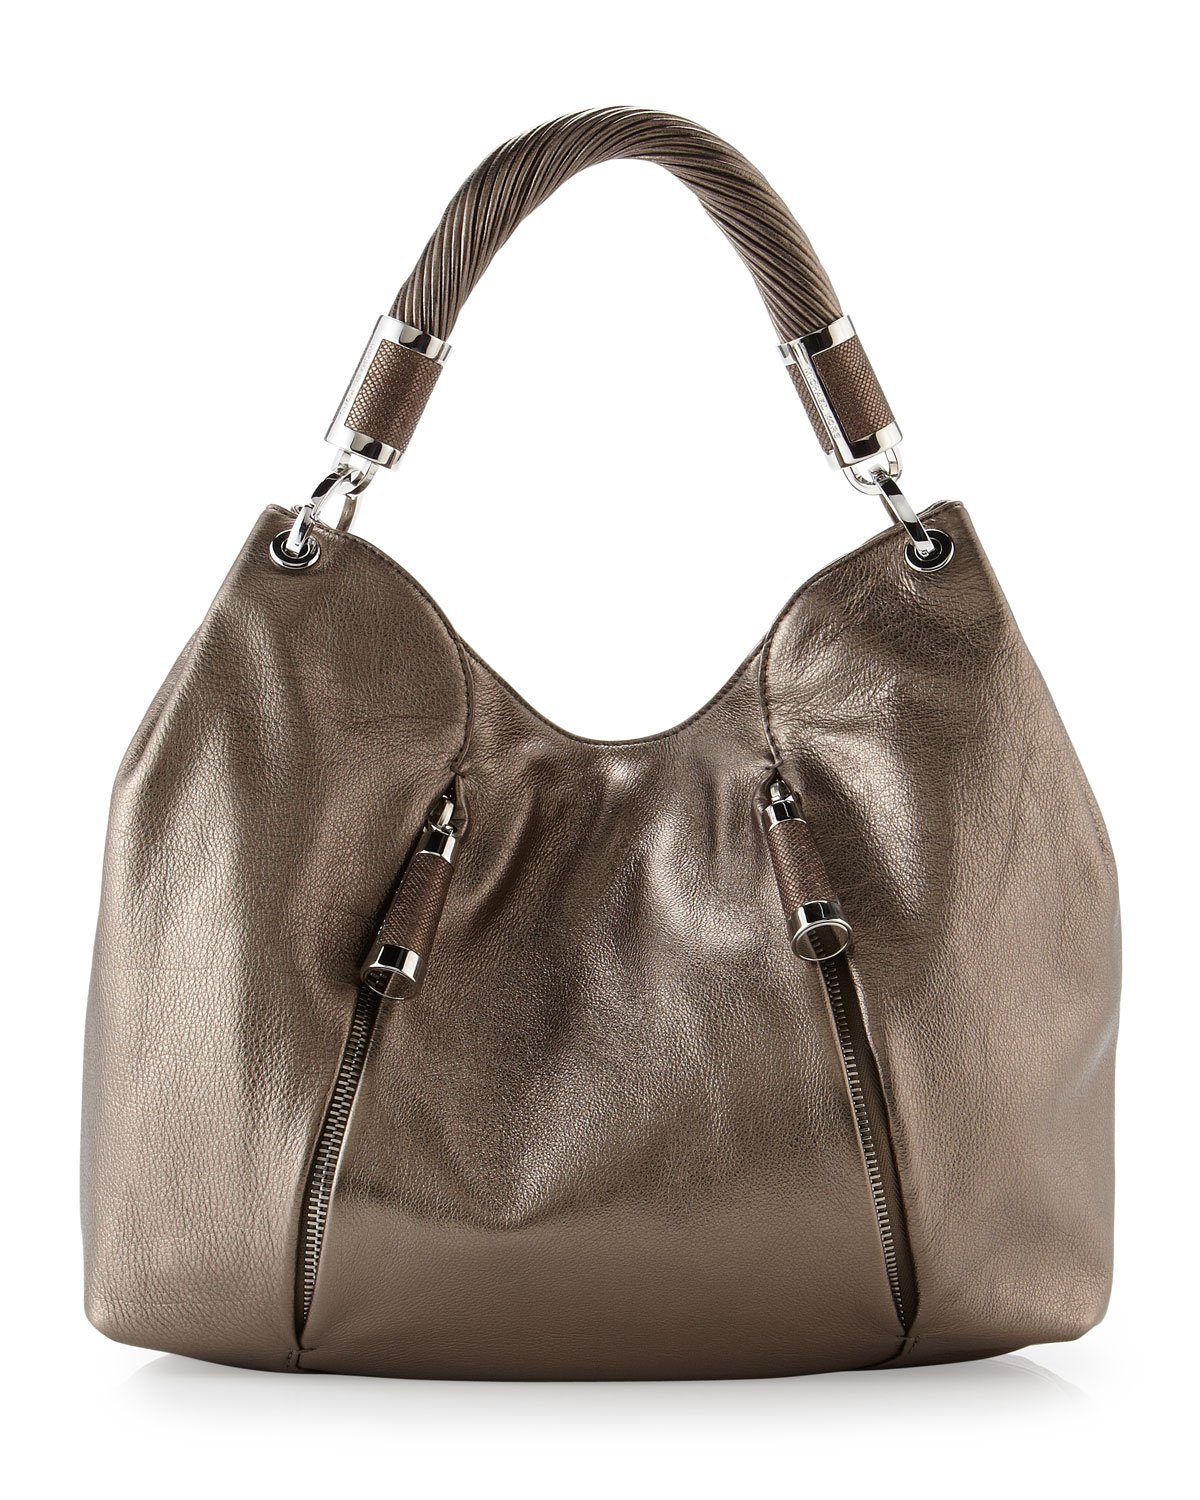 michael kors tonne zipper hobo bag in brown anthracite lyst. Black Bedroom Furniture Sets. Home Design Ideas